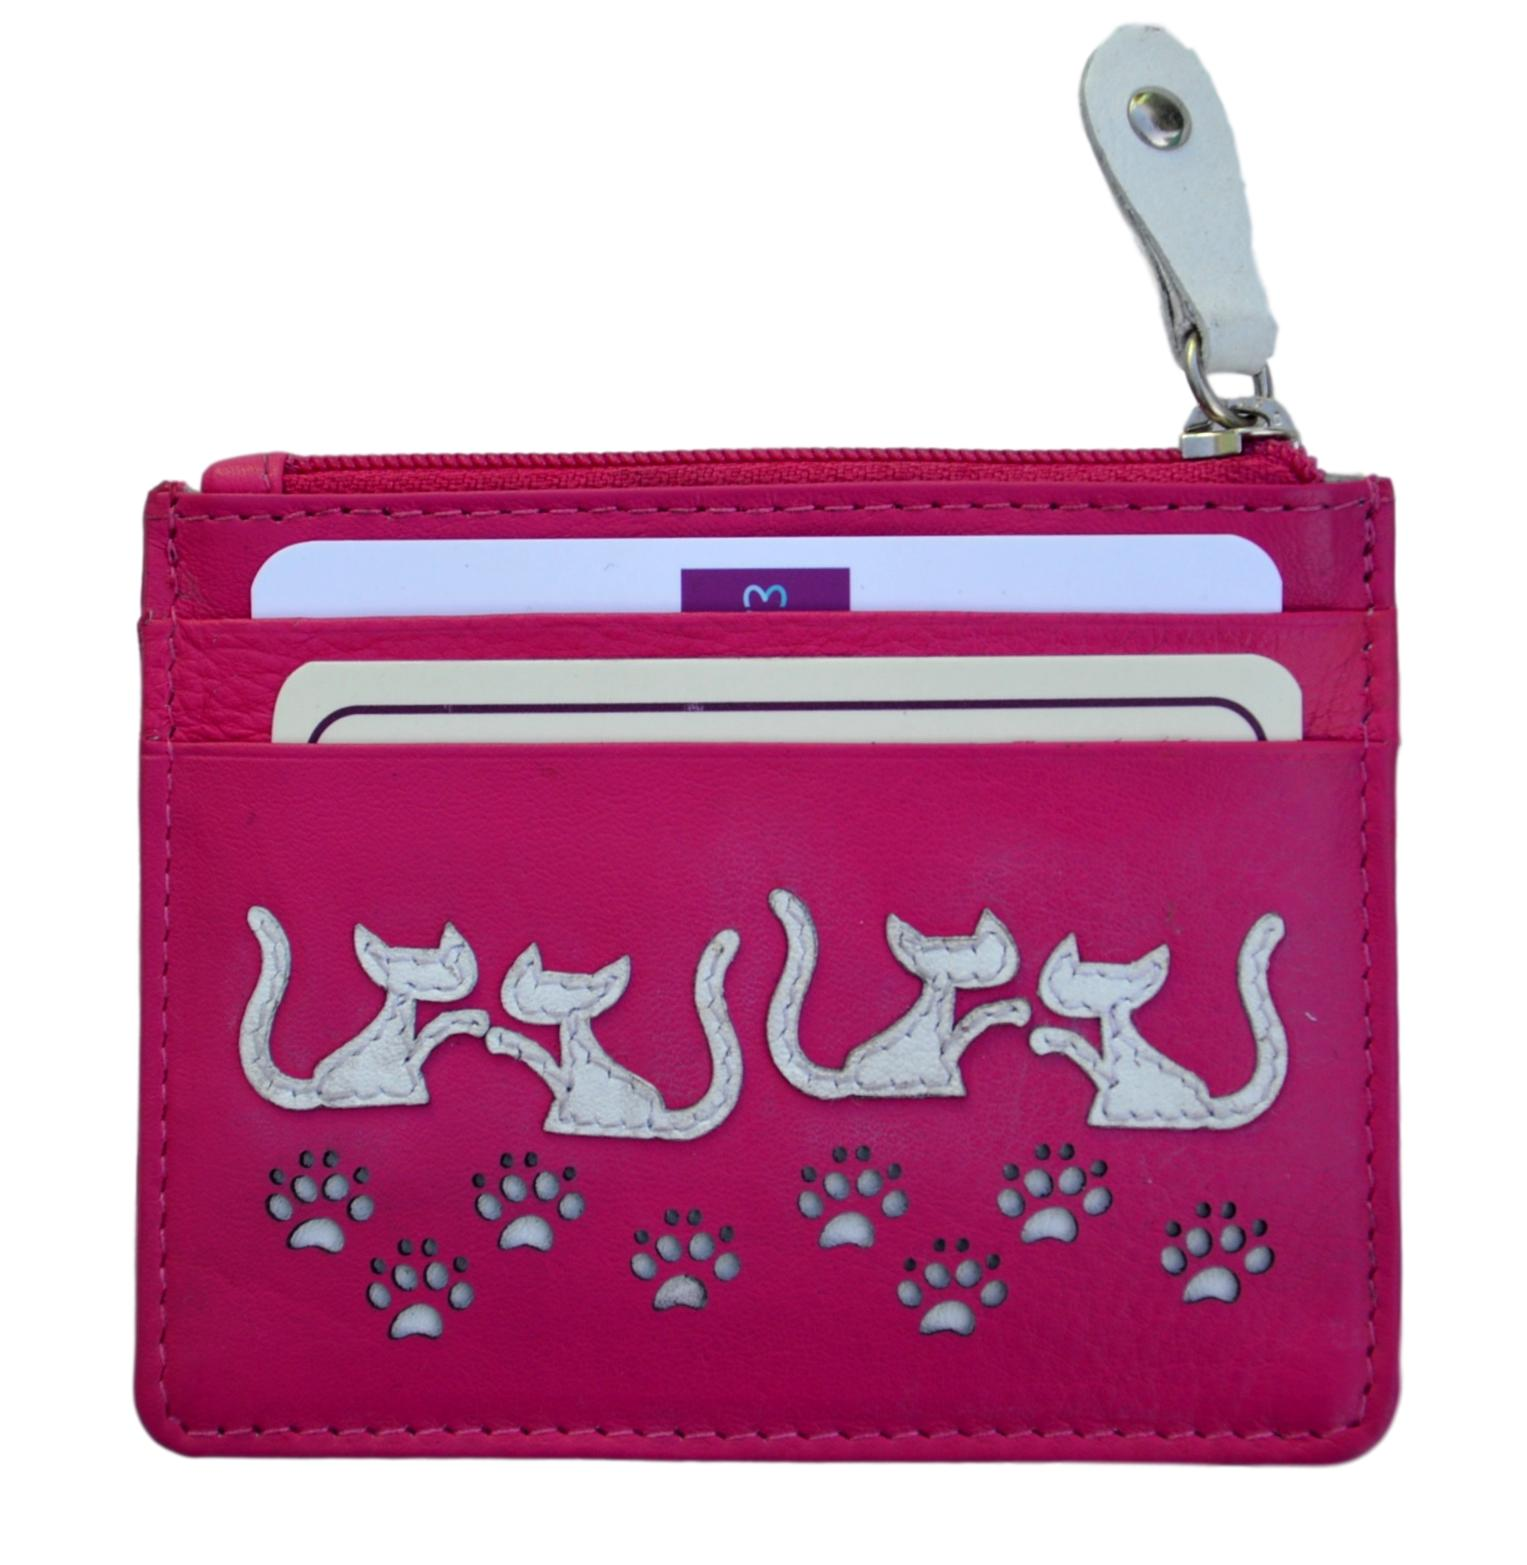 Mala Leather Pink Poppy Cat Coin and Card Holder Purse